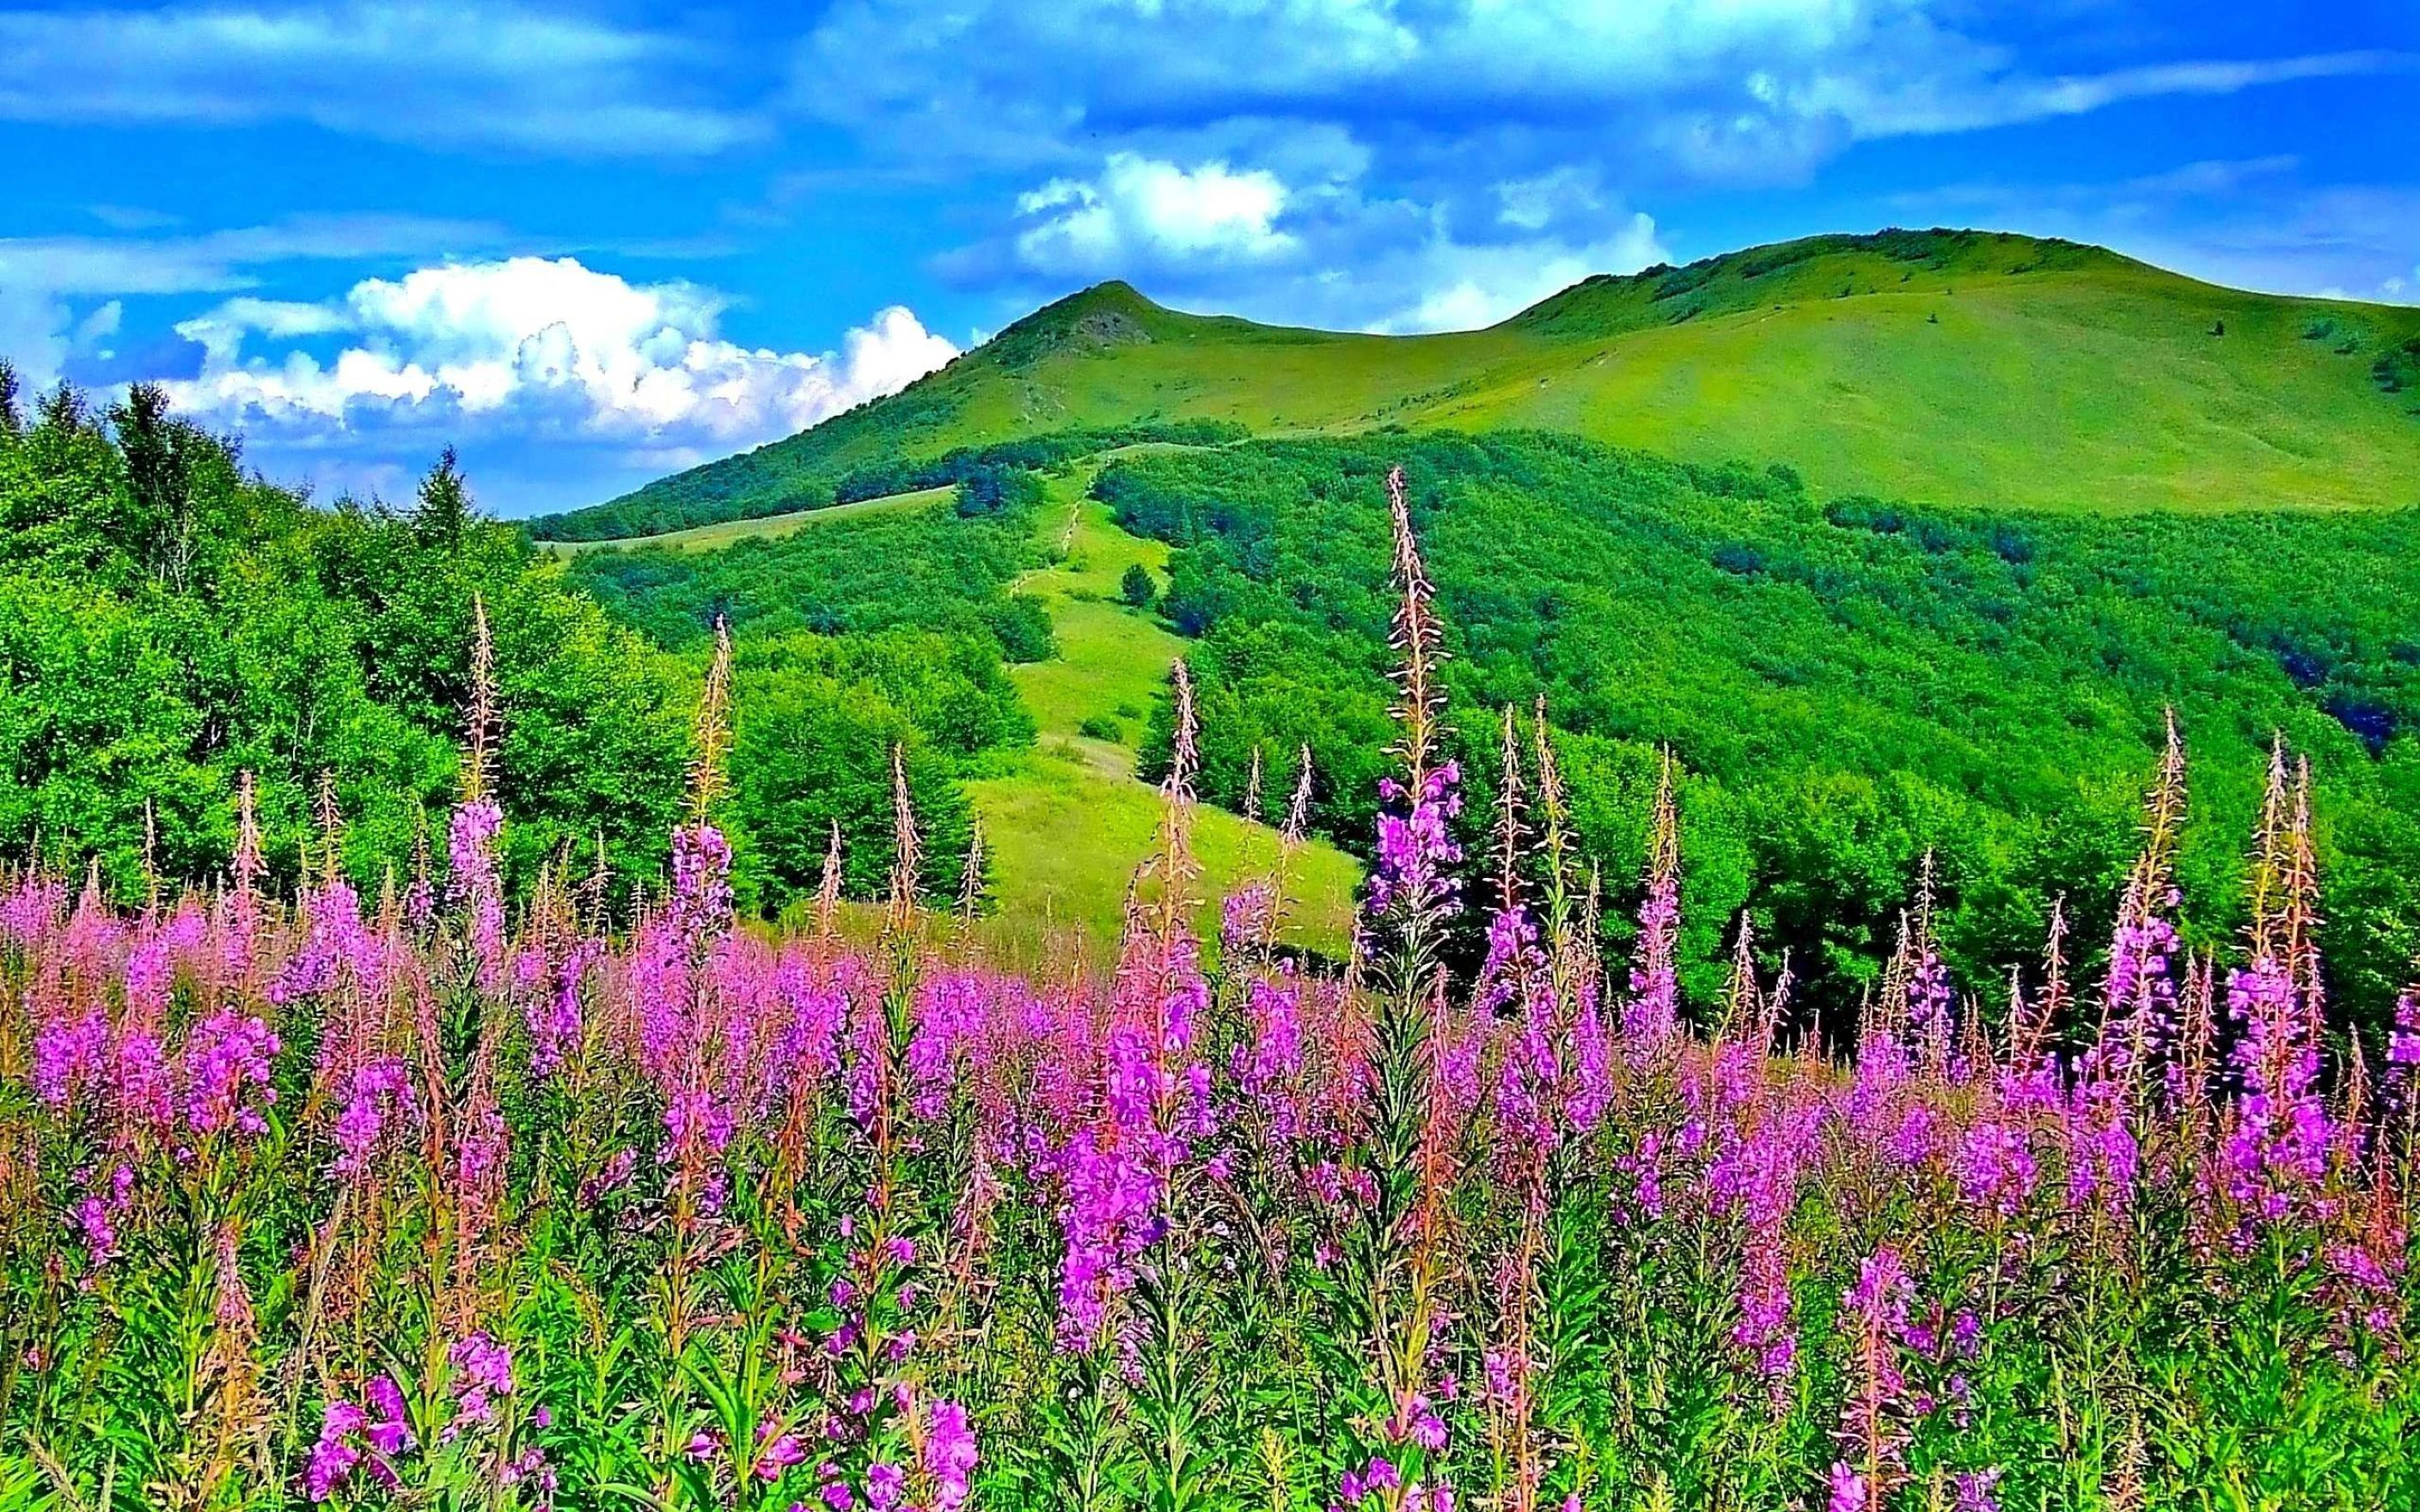 Green Mountain Flowers Trees Nature Wallpaper: Desktop HD